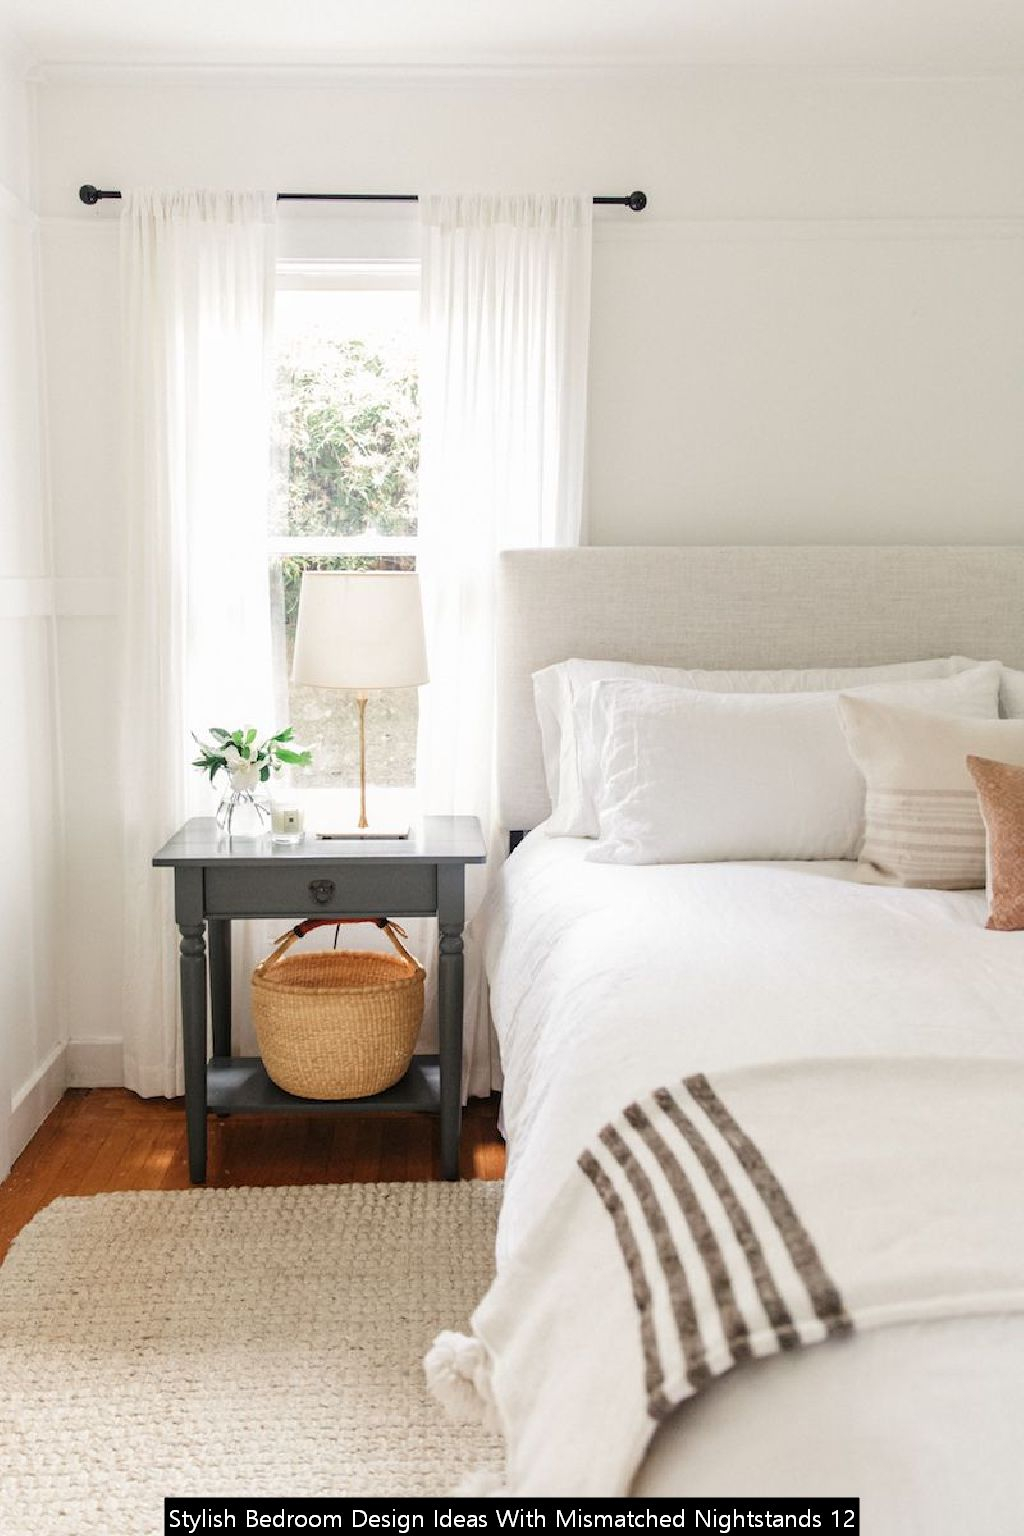 Stylish Bedroom Design Ideas With Mismatched Nightstands 12